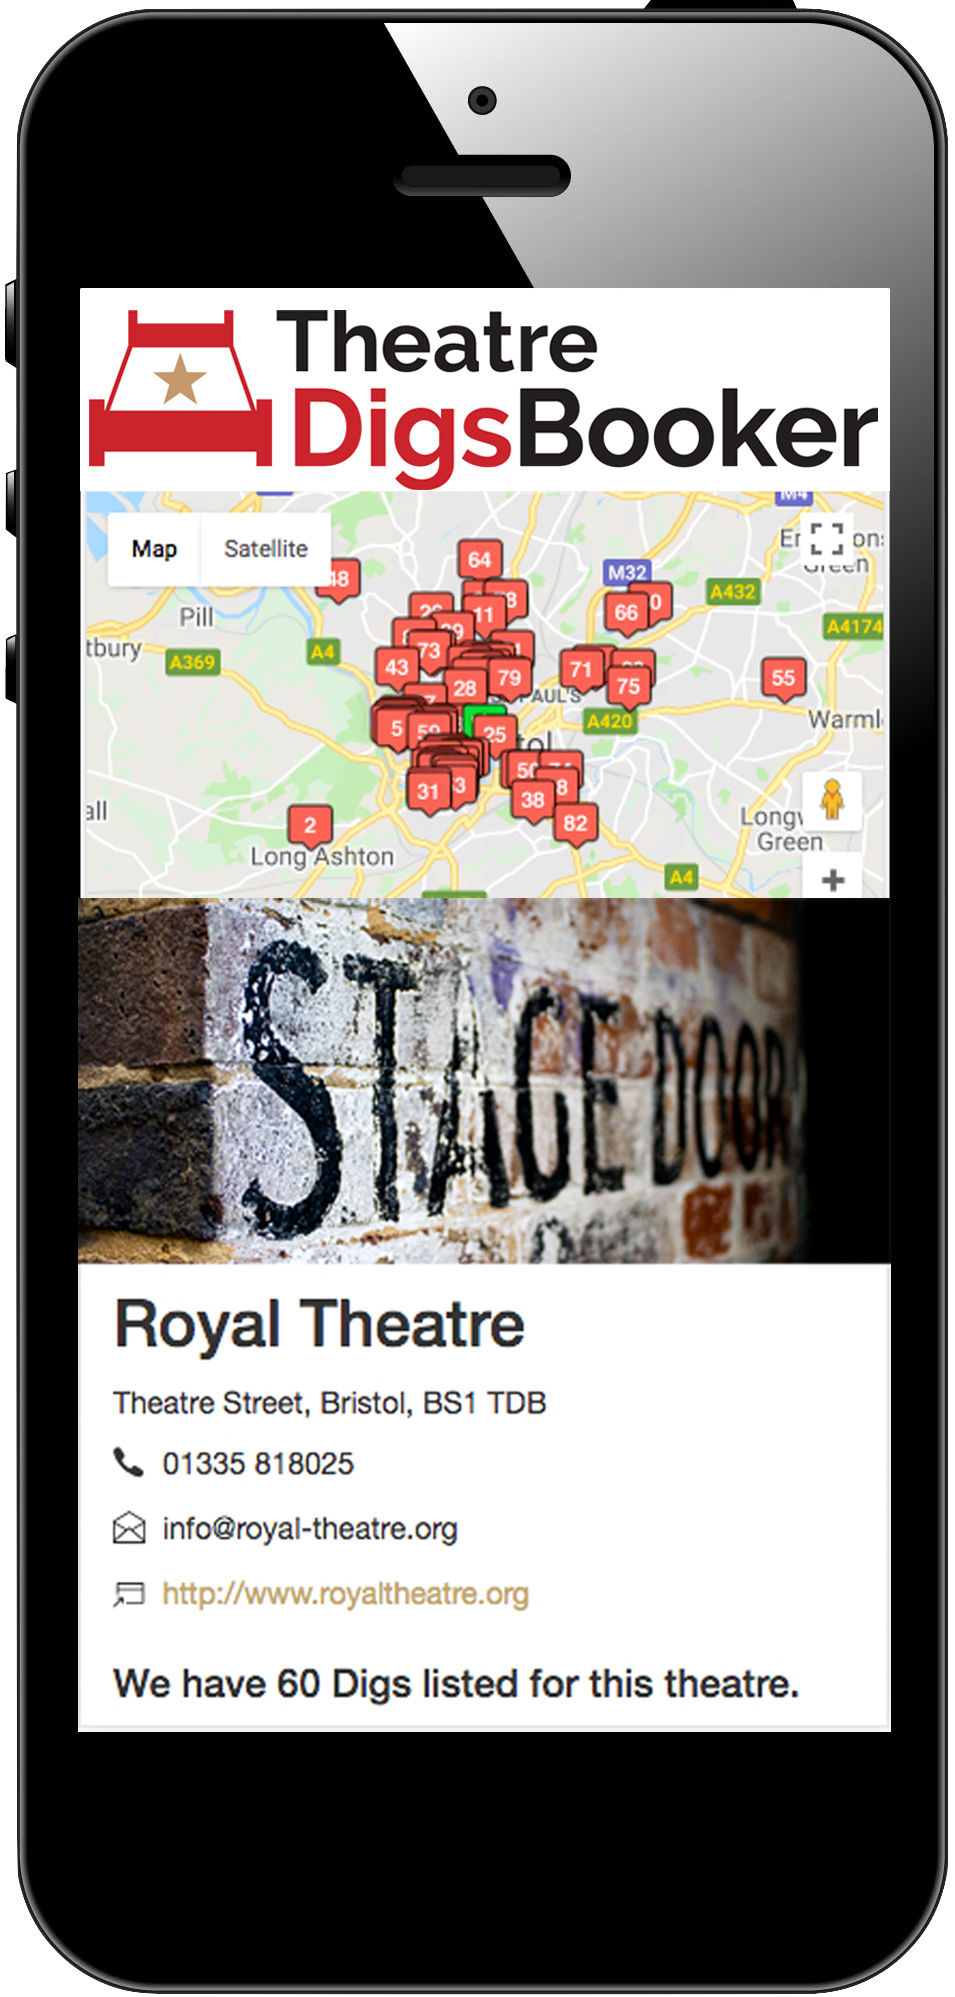 TheatreDigsBooker Online Digs Booking